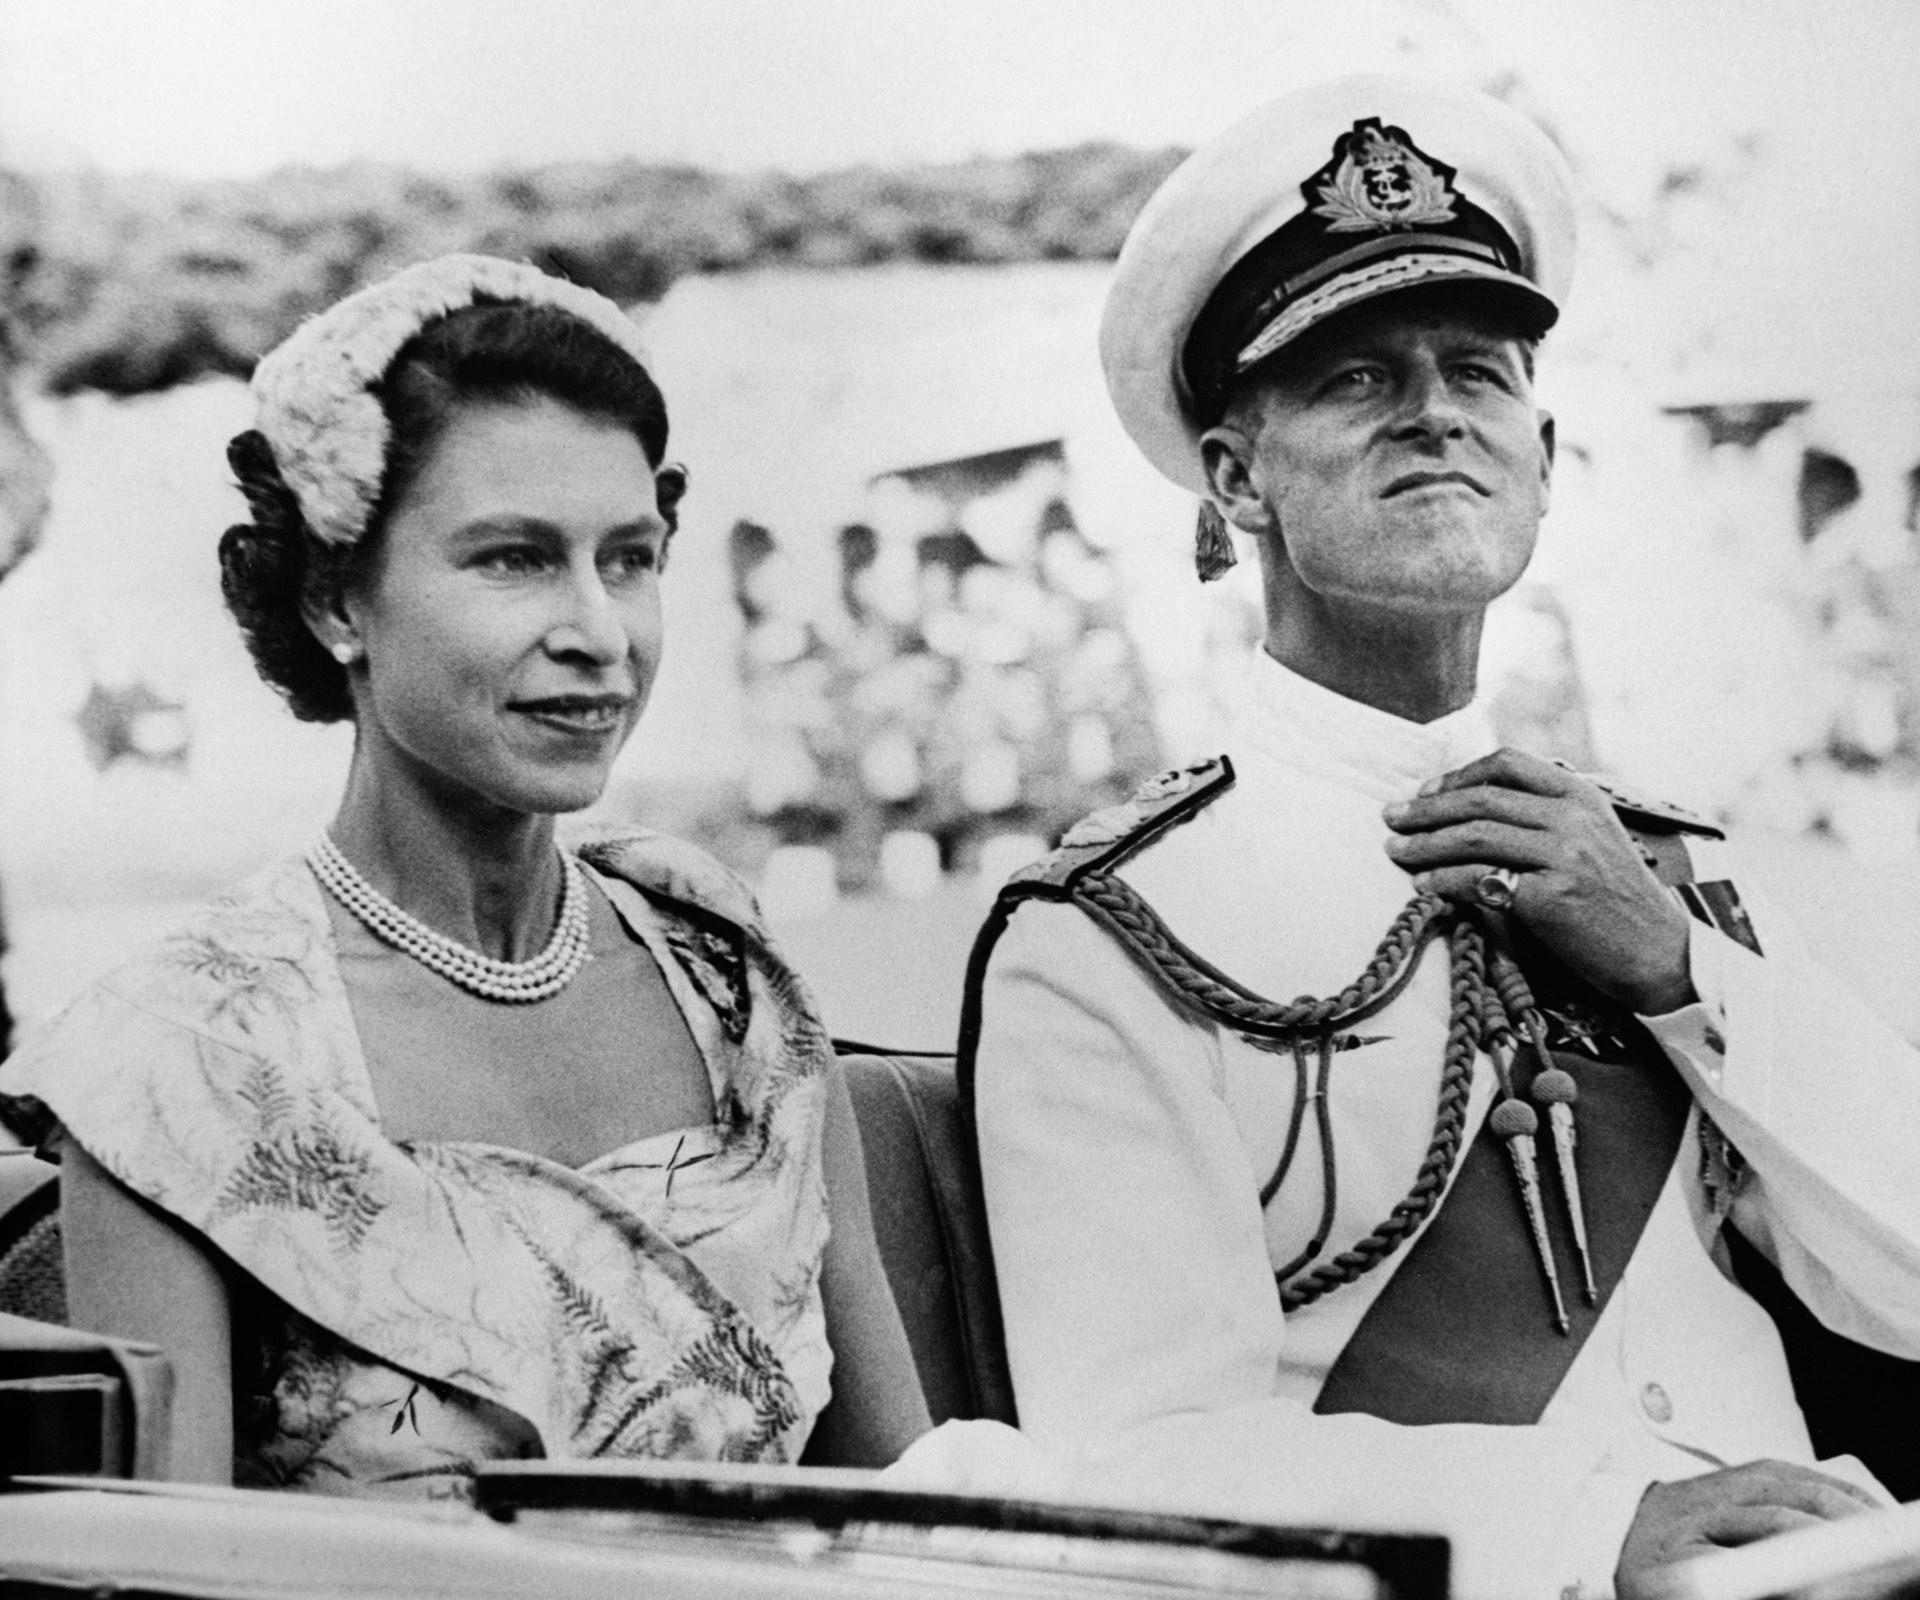 Biographer A.M Wilson told his audience that Philip's first remark to the Queen after her coronation was, 'Where did you get that hat?' PHOTO: The Queen and Prince Philip in Australia in 1954.